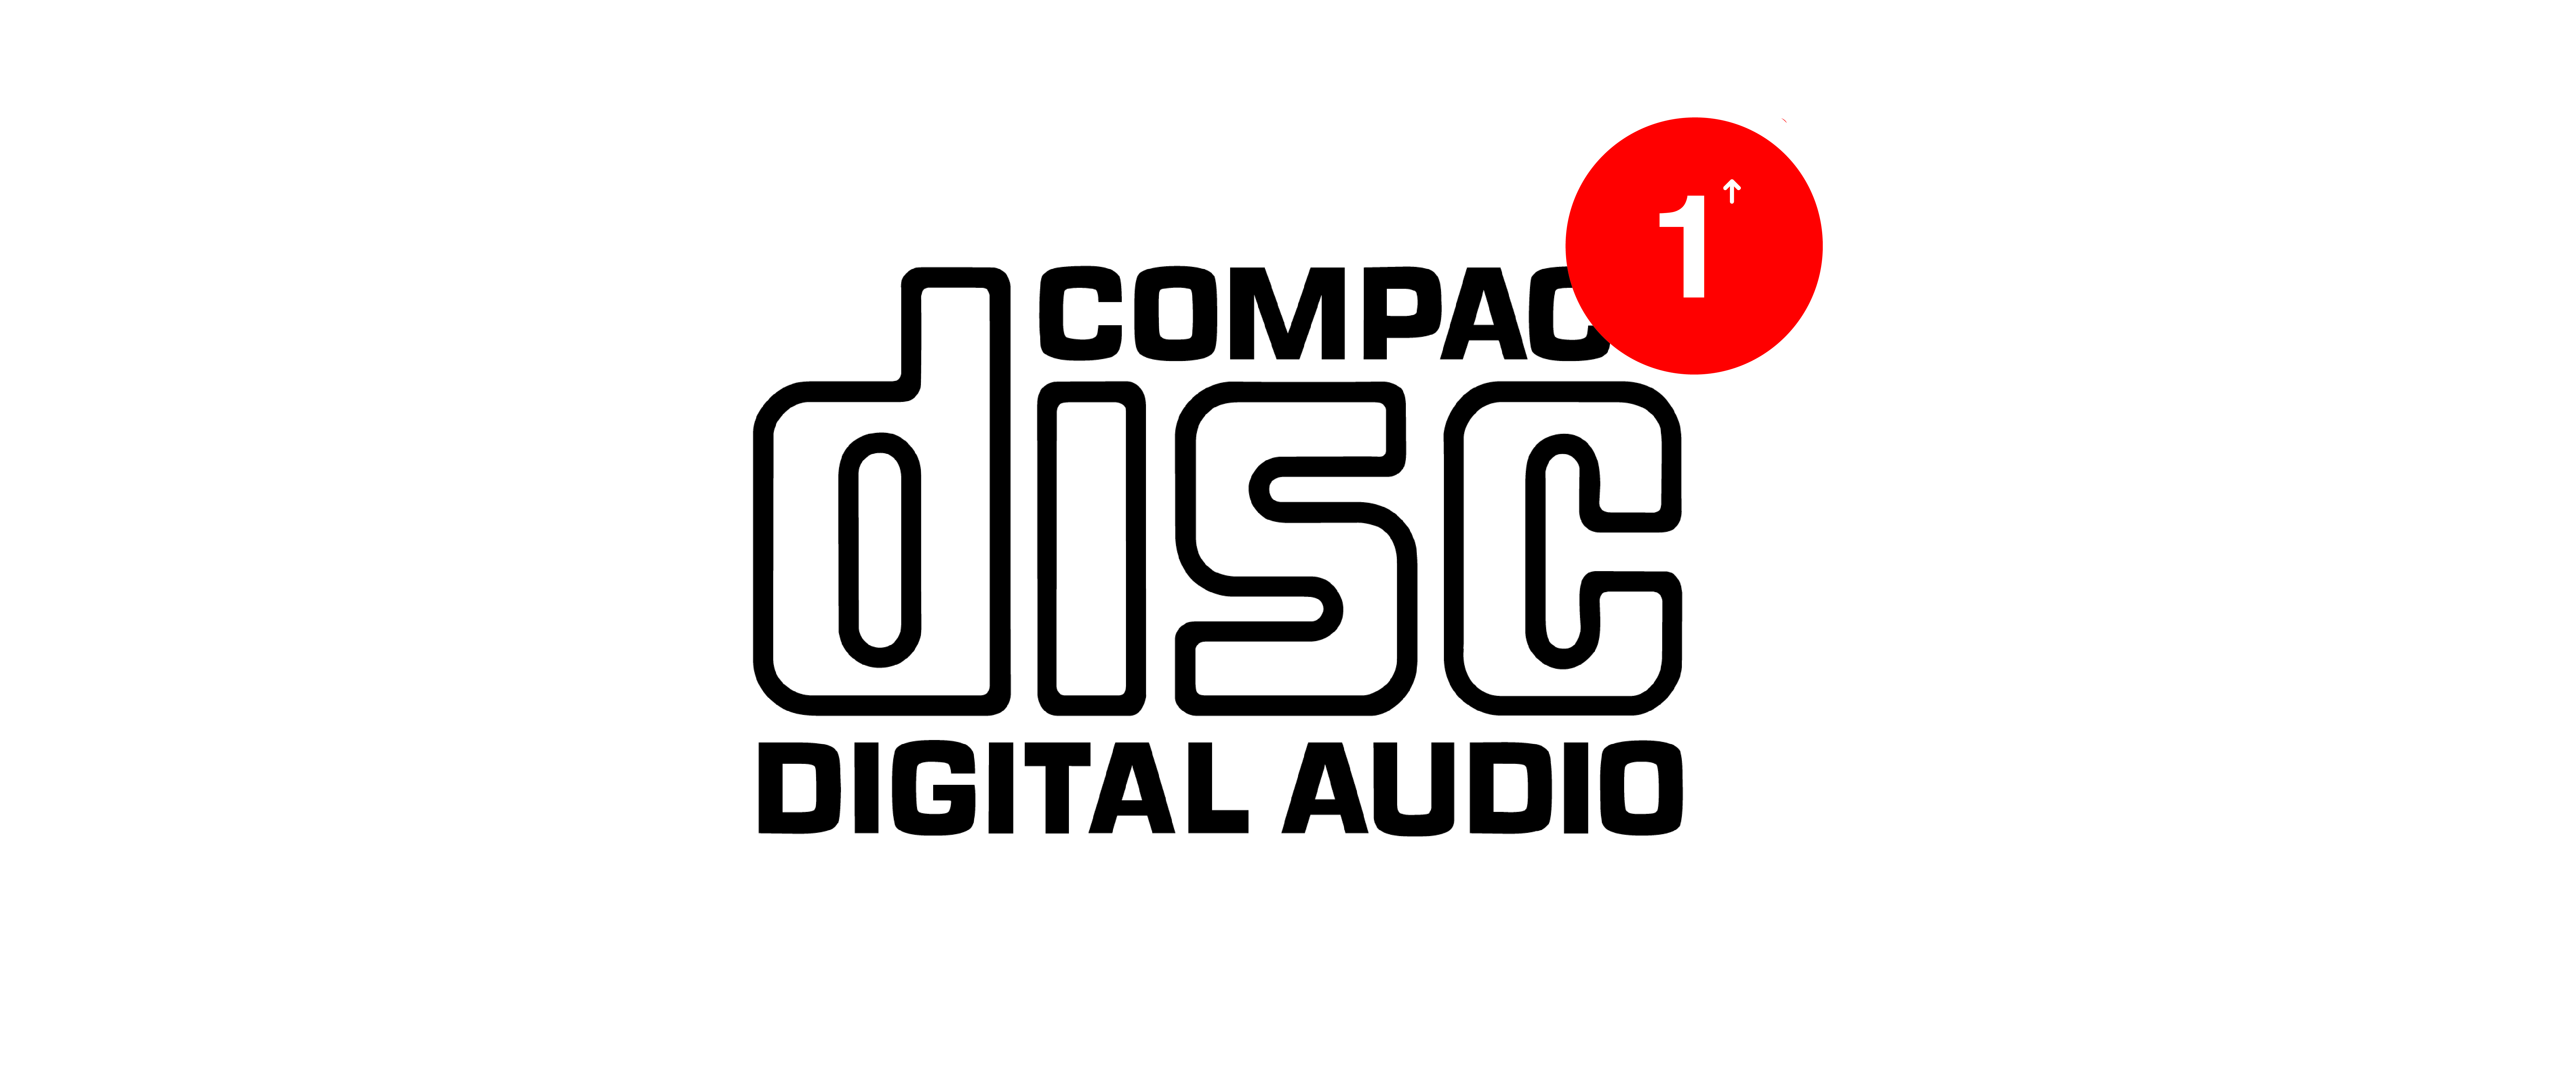 Free Higher Resolution Upgrades* - Bits and Bytes - Audiophile Style